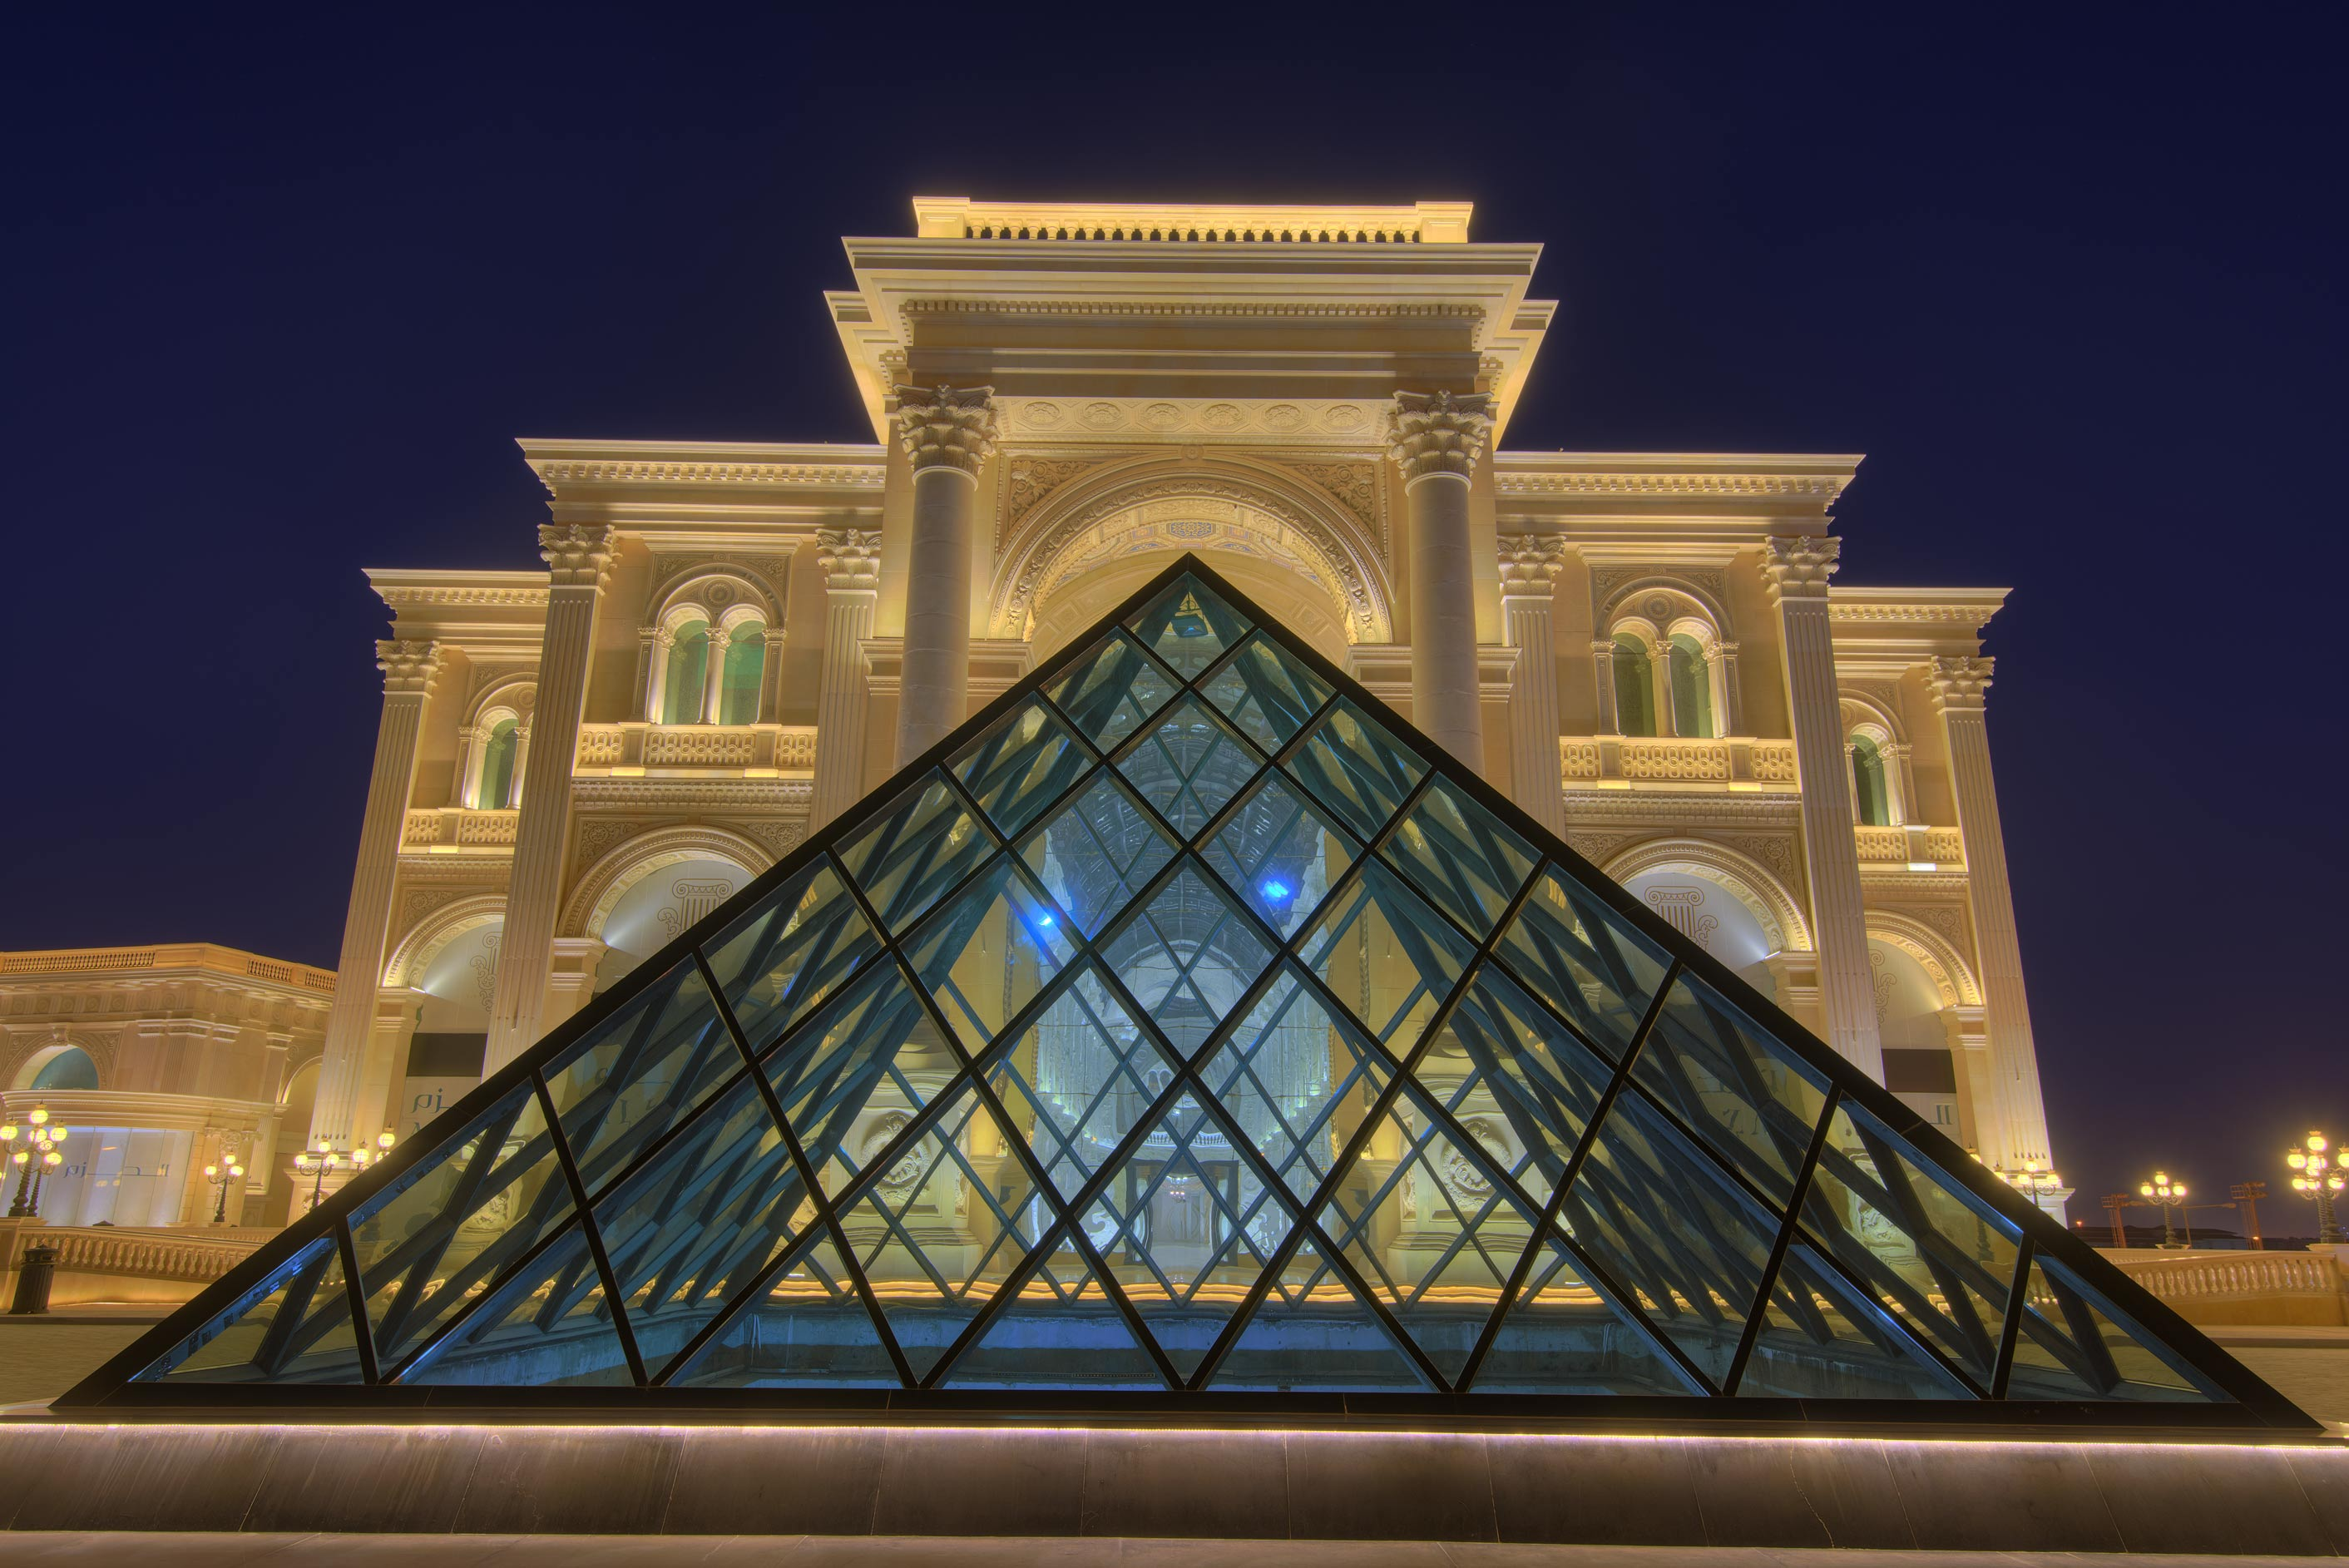 Glass pyramid at the entrance of Al Hazm Mall on Al Markhiya St. in dusk. Doha, Qatar